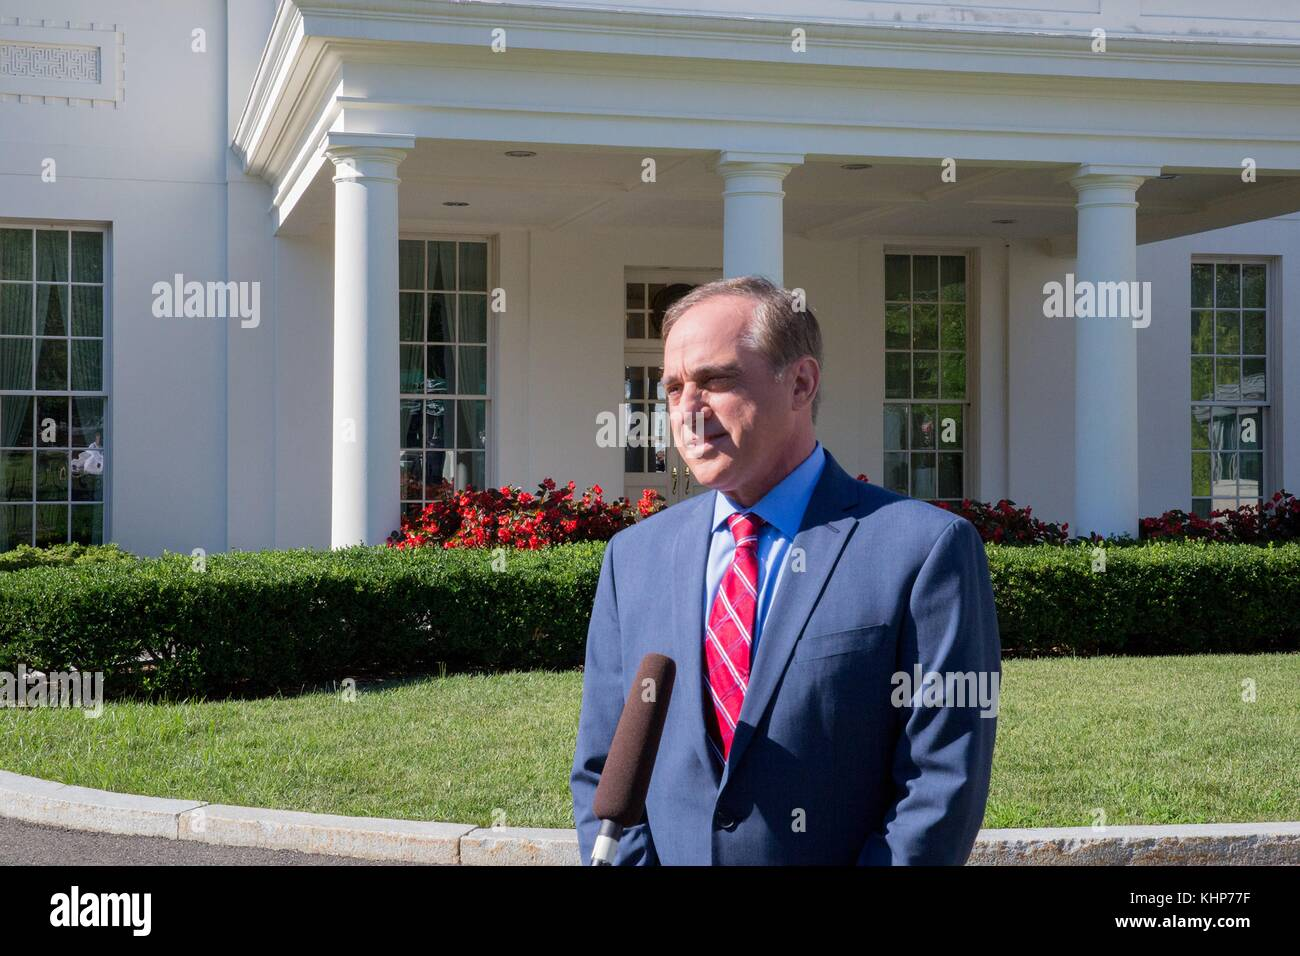 U.S. Secretary of Veterans Affairs David Shulkin speaks to the media outside the West Wing of the White House July - Stock Image